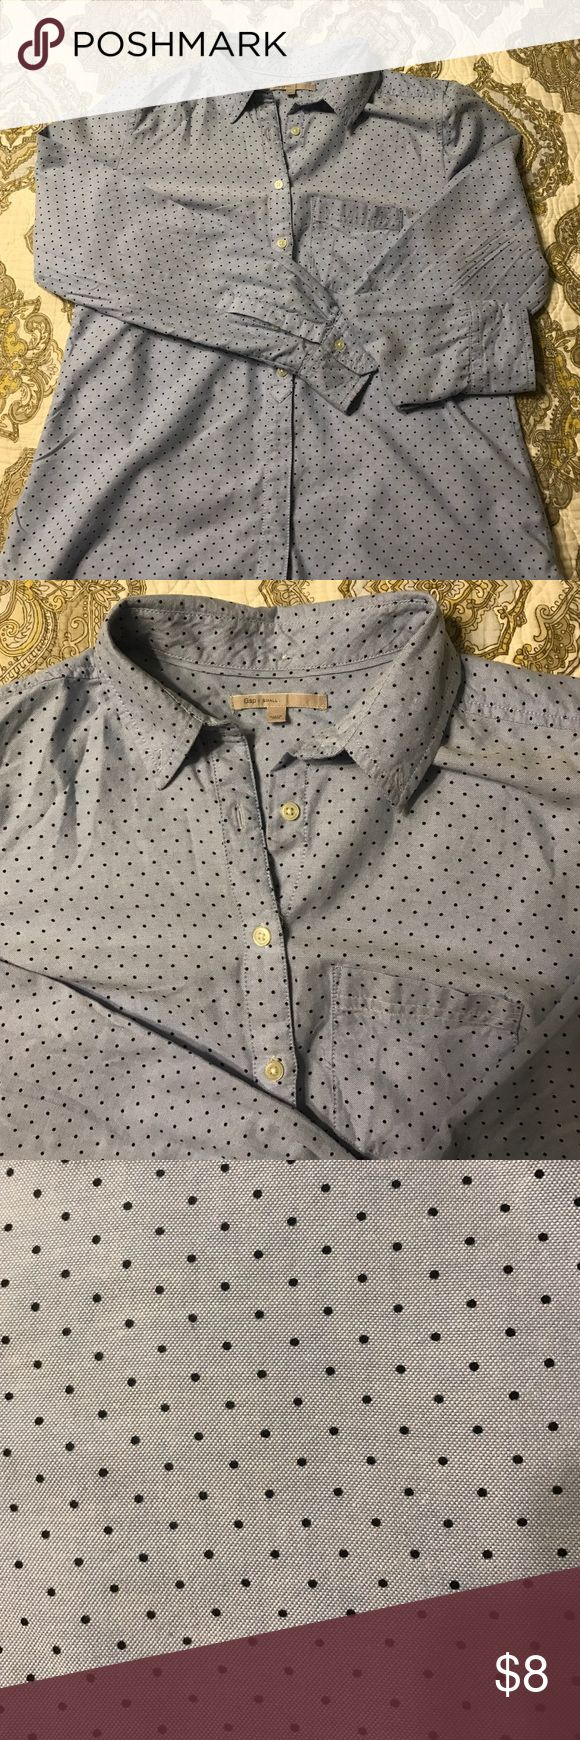 GAP Polka Dot Oxford Shirt Women's oxford shirt with polka dots. Adorable by itself or under a sweater. Great staple piece GAP Tops Button Down Shirts